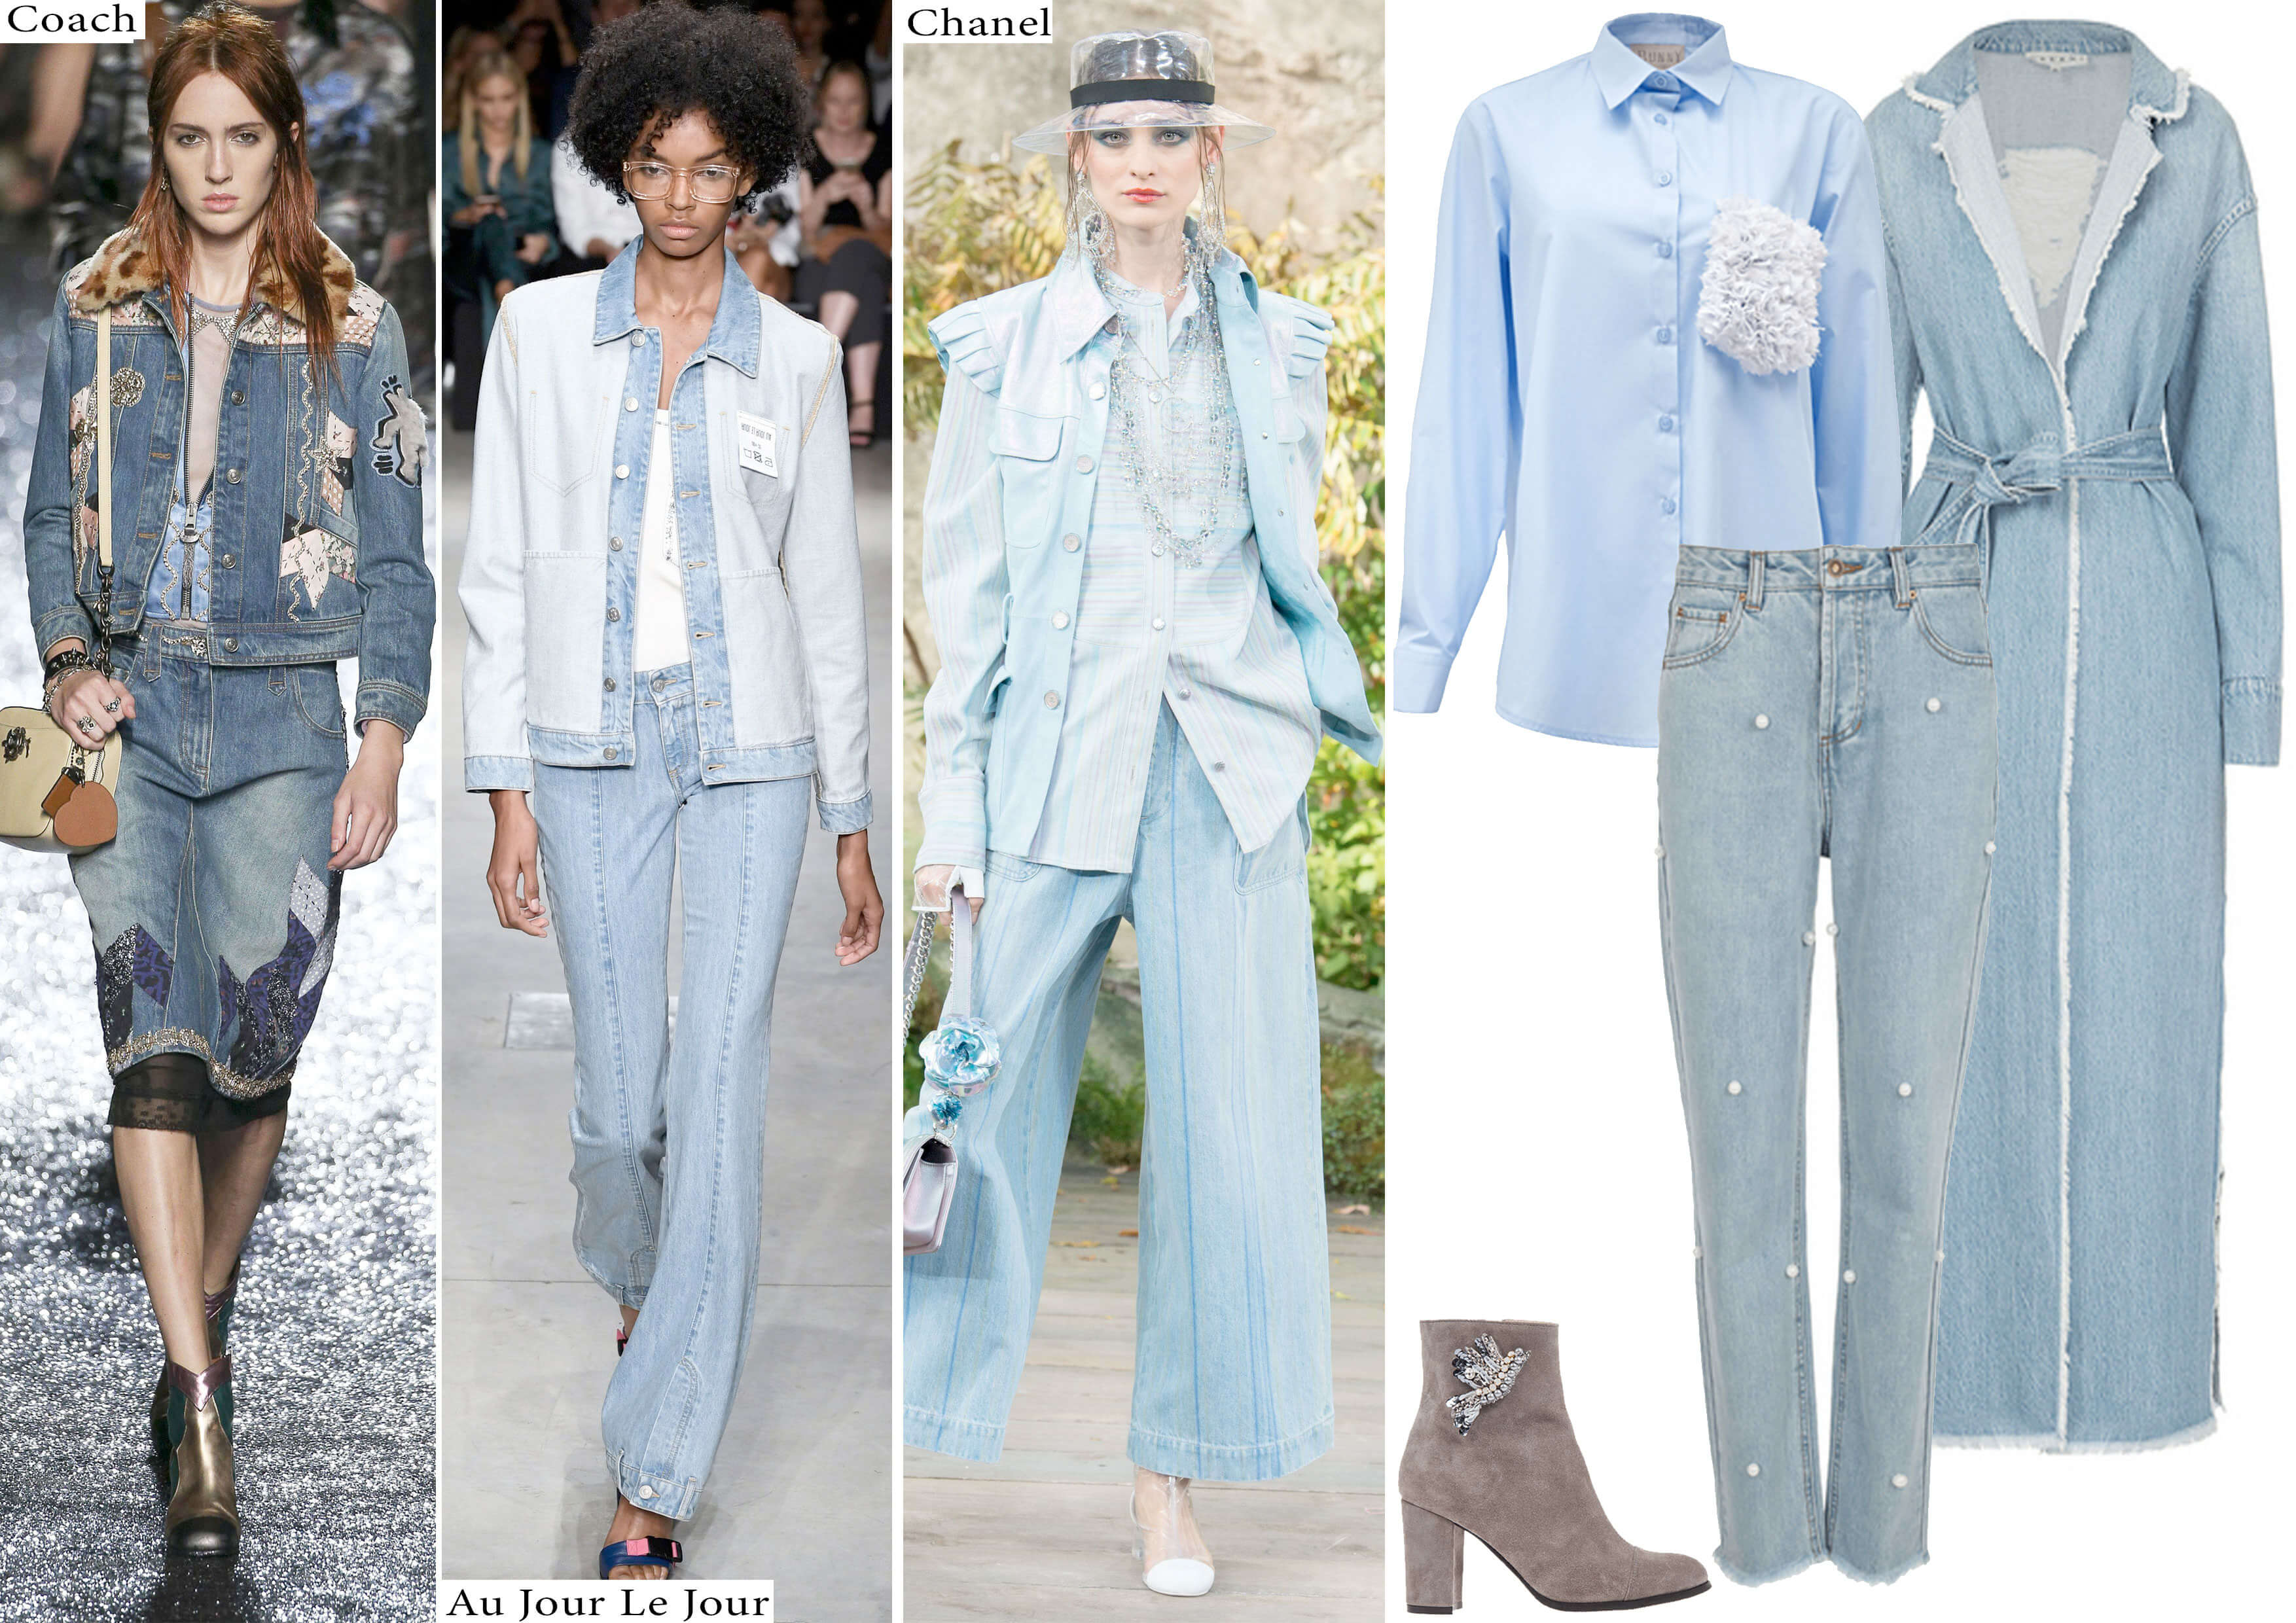 What is fashionable this spring?